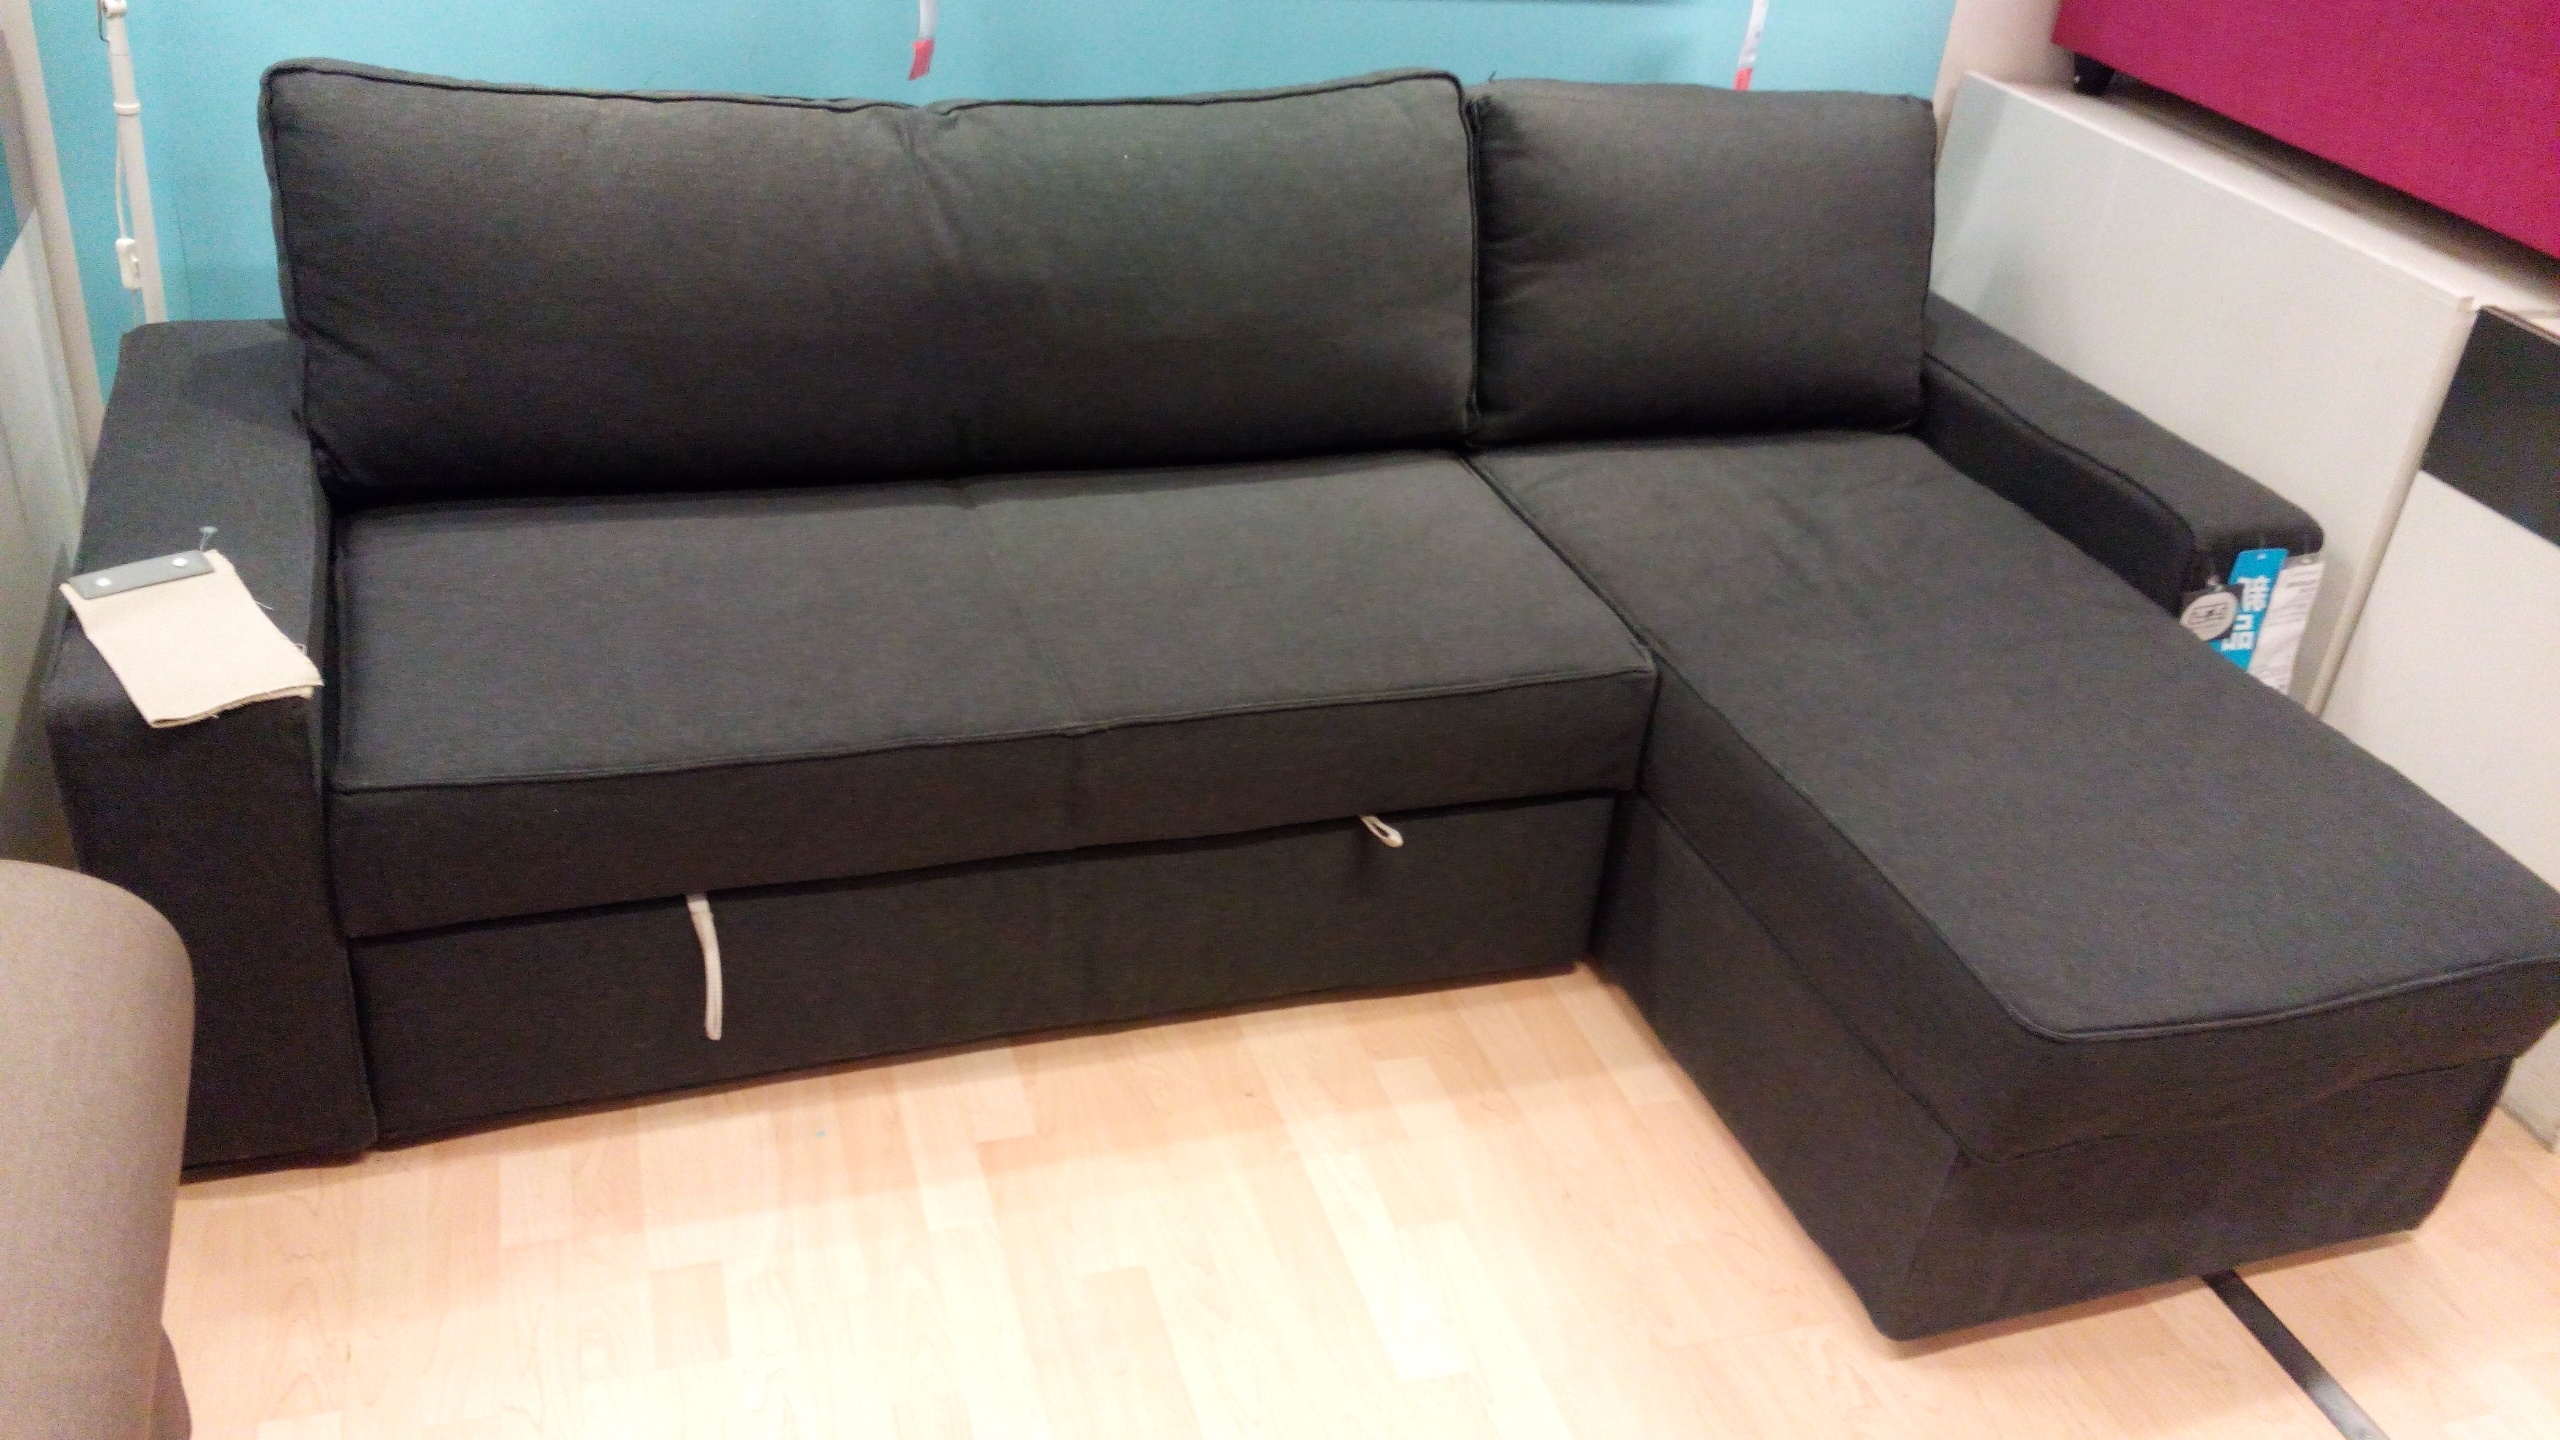 Ikea Vilasund And Backabro Review – Return Of The Sofa Bed Clones! With Regard To 2017 Ikea Karlstad Chaises (View 6 of 15)